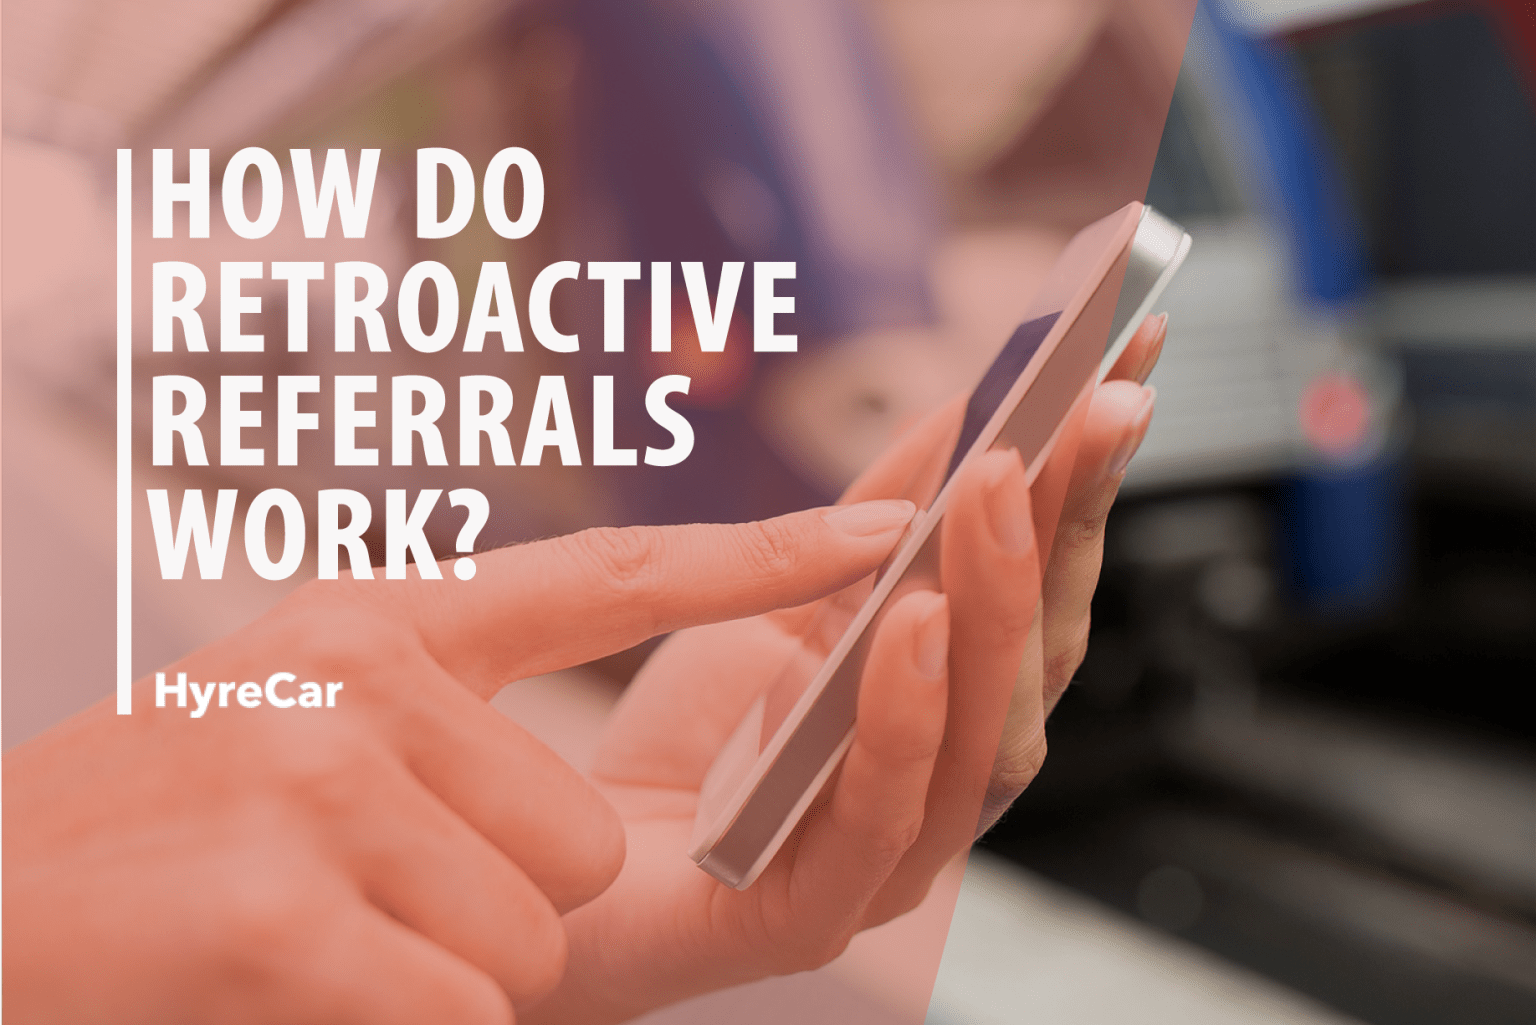 How Do Retroactive Referrals Work?